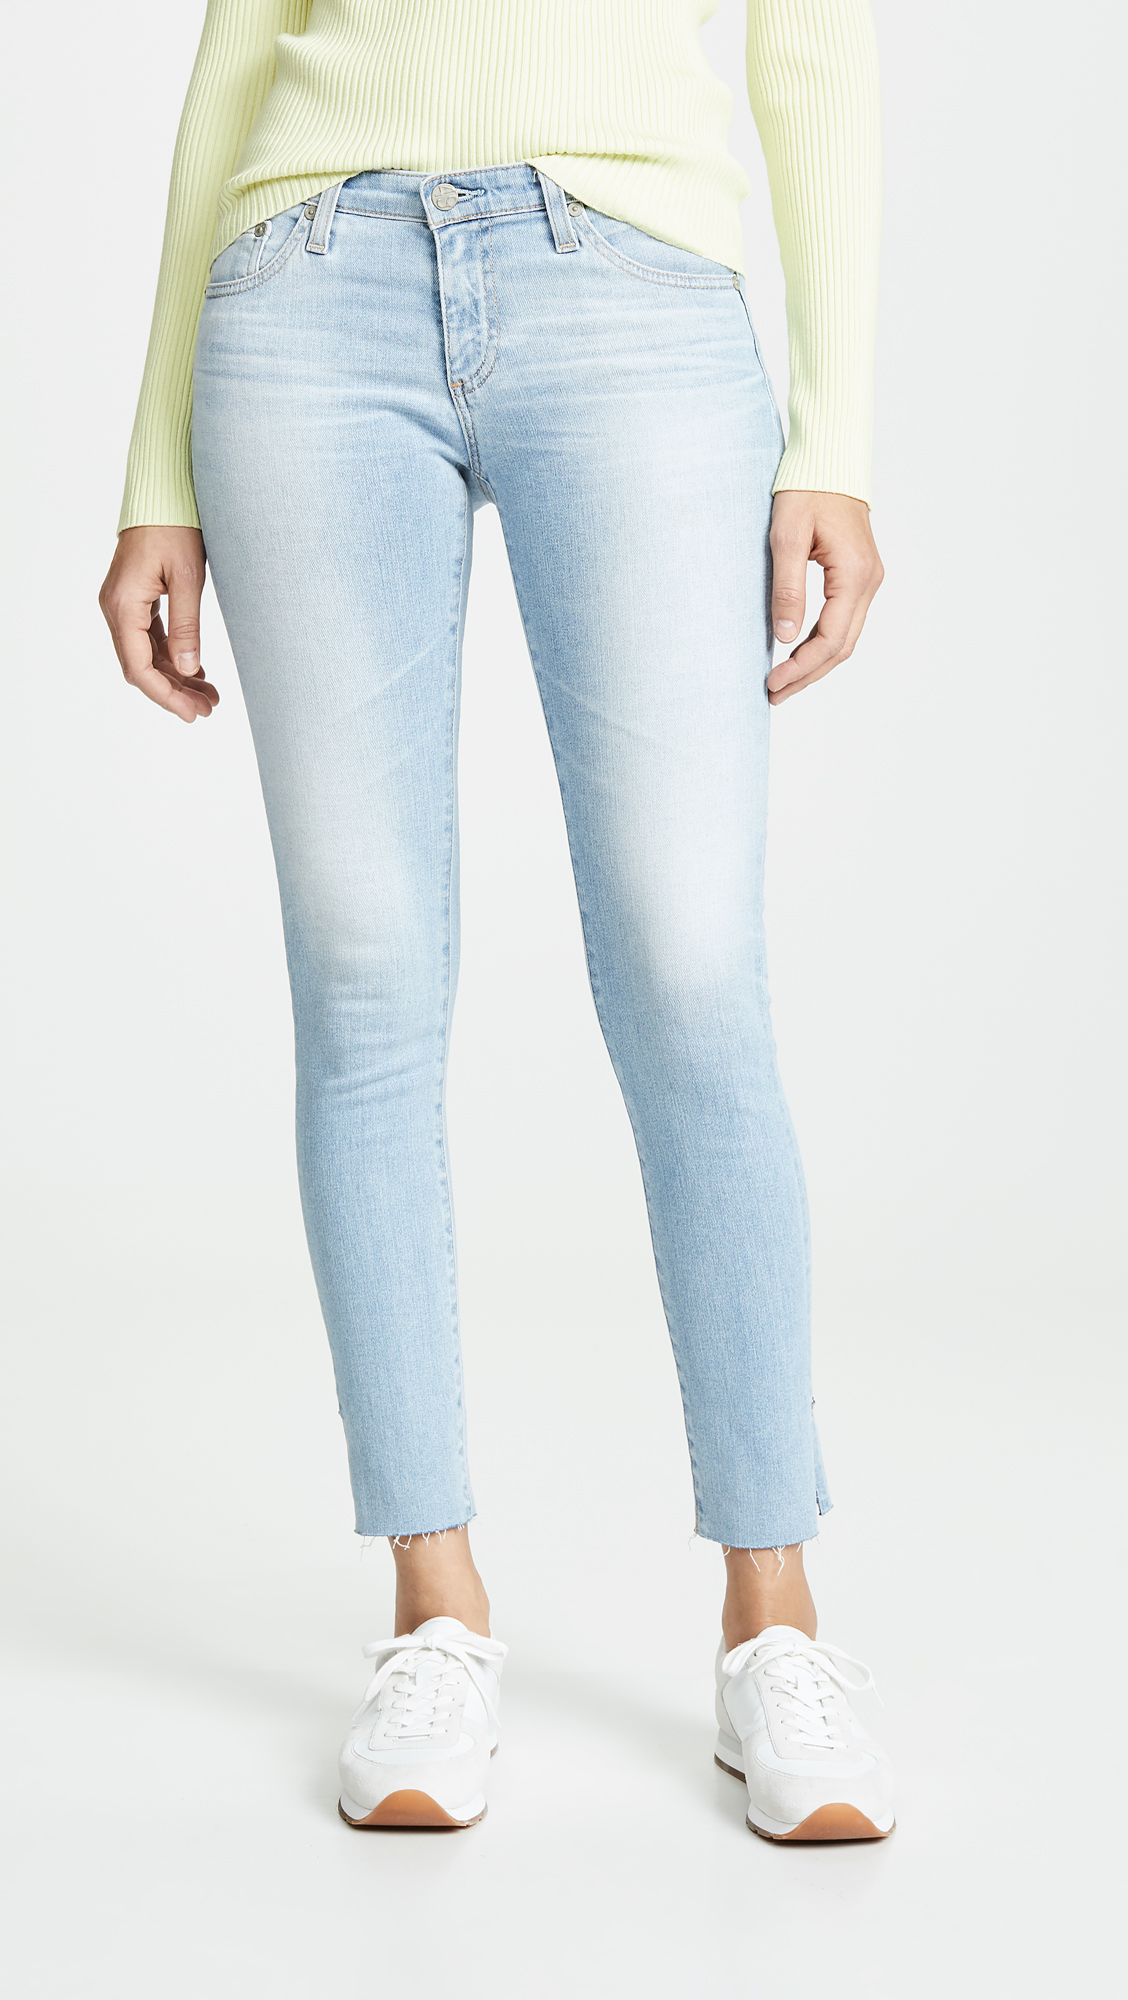 The legging, AG legging jeans